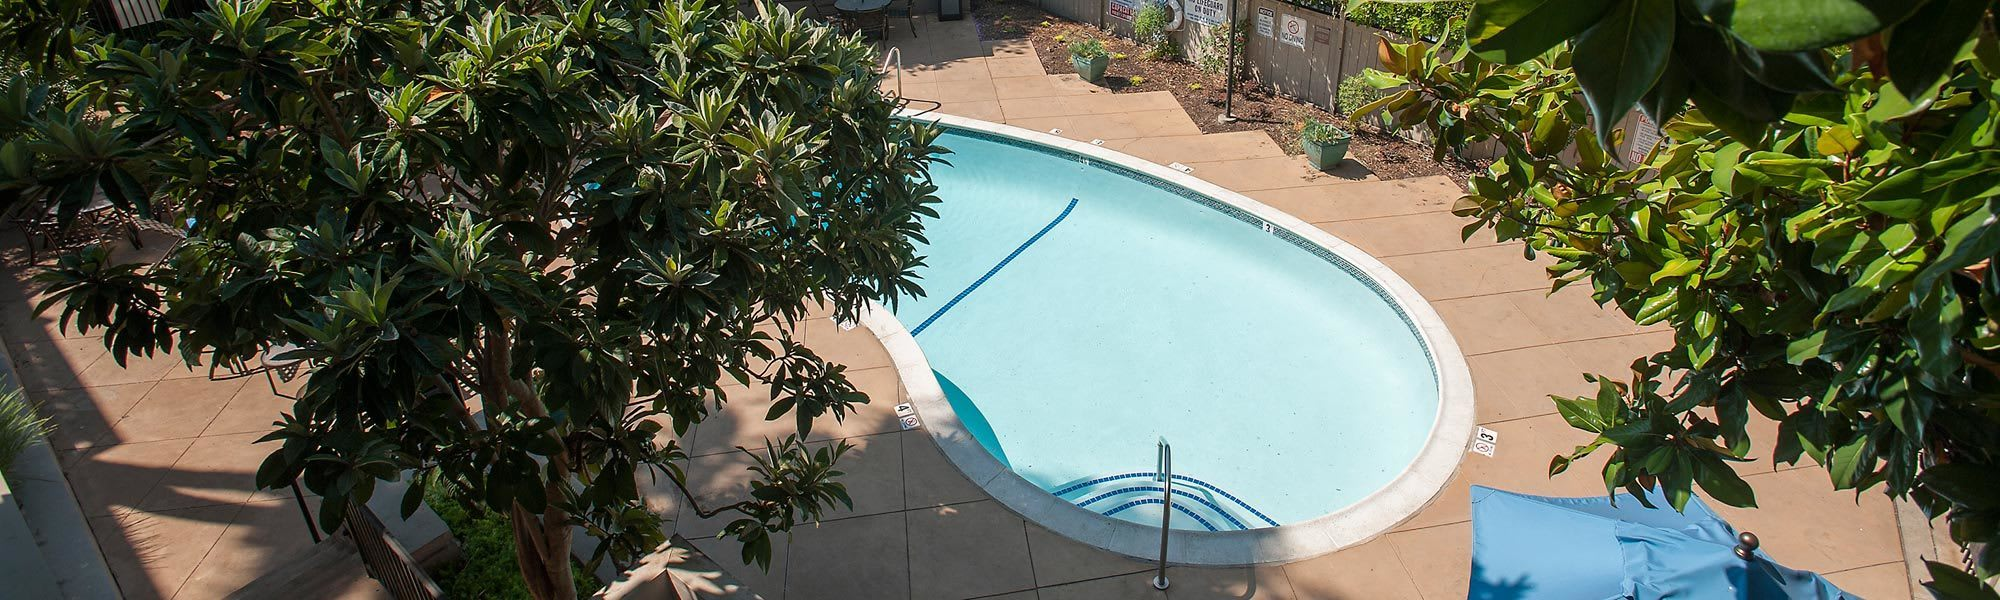 See what we have to offer by visiting Regency Plaza Apartment Homes's amenities page.